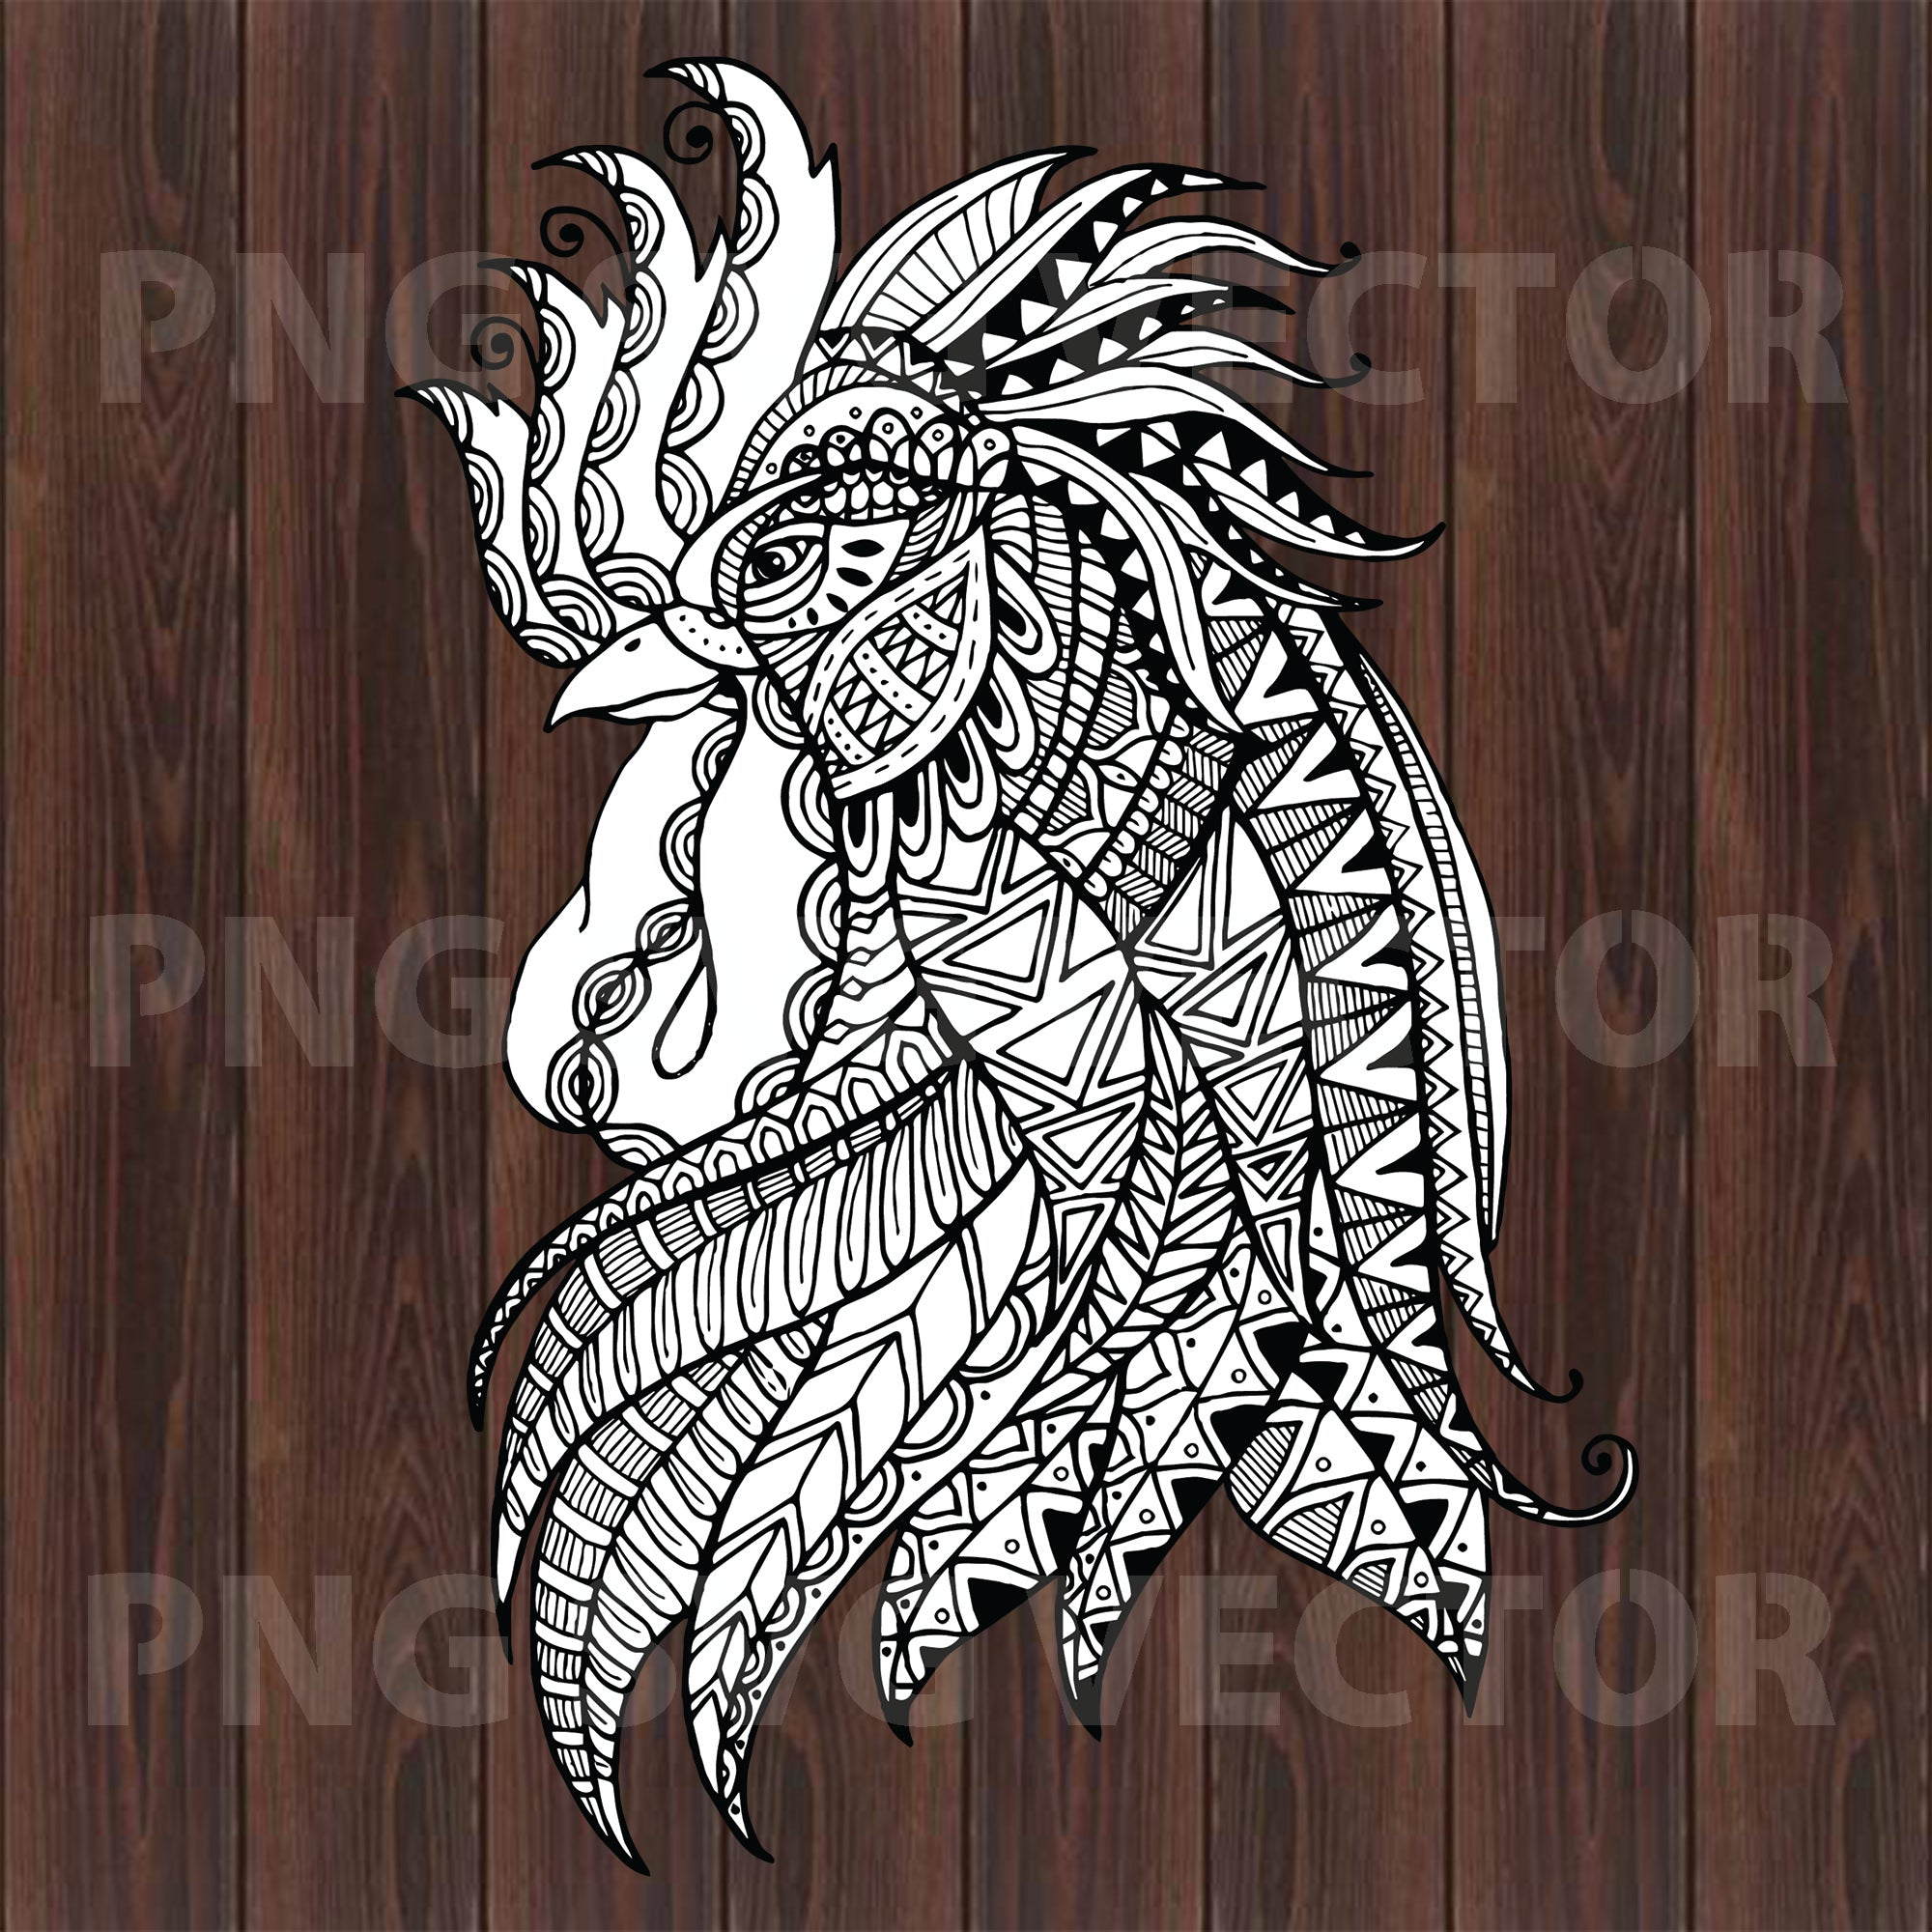 Mandala Rooster Head Svg, Mandala Rooster Svg, Mandala Svg, Rooster Svg Files, Mandal Rooster Cutting Files For Cricut, SVG, DXF, EPS, PNG Instant Download